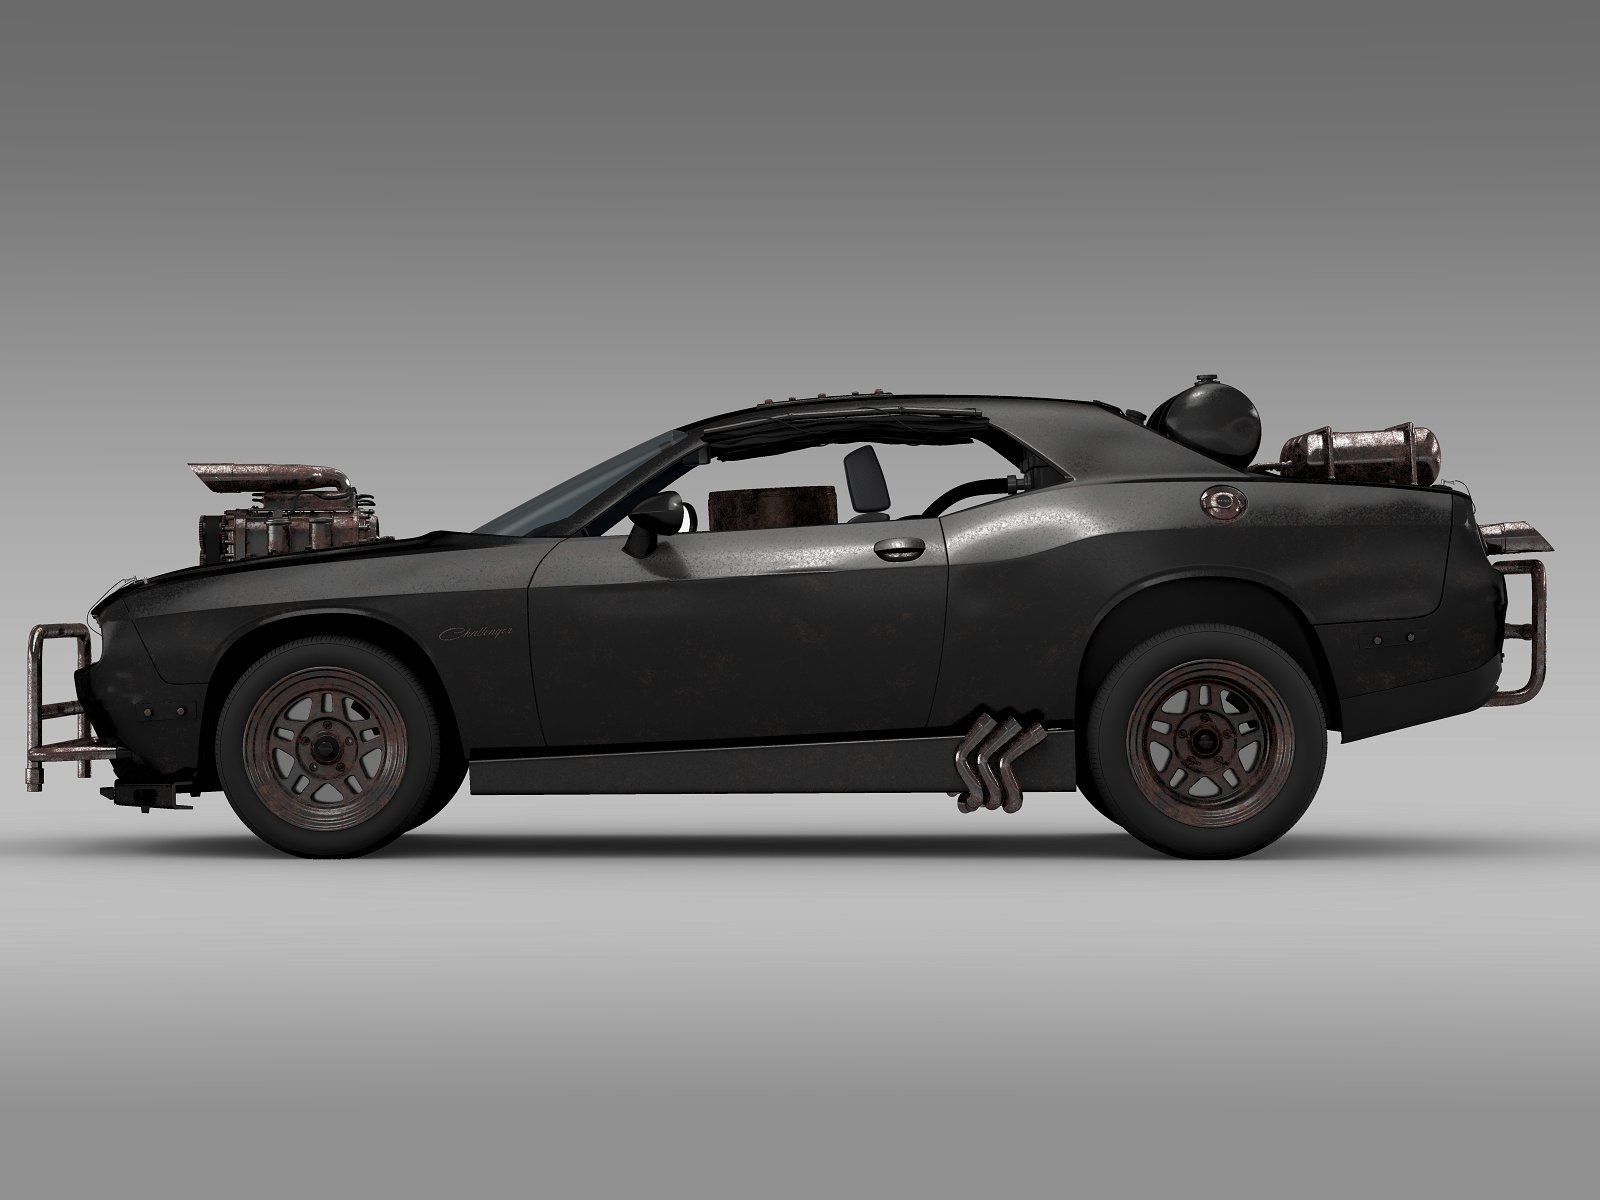 Mad Max Fight Interceptor Dodge Chal correctlynamed